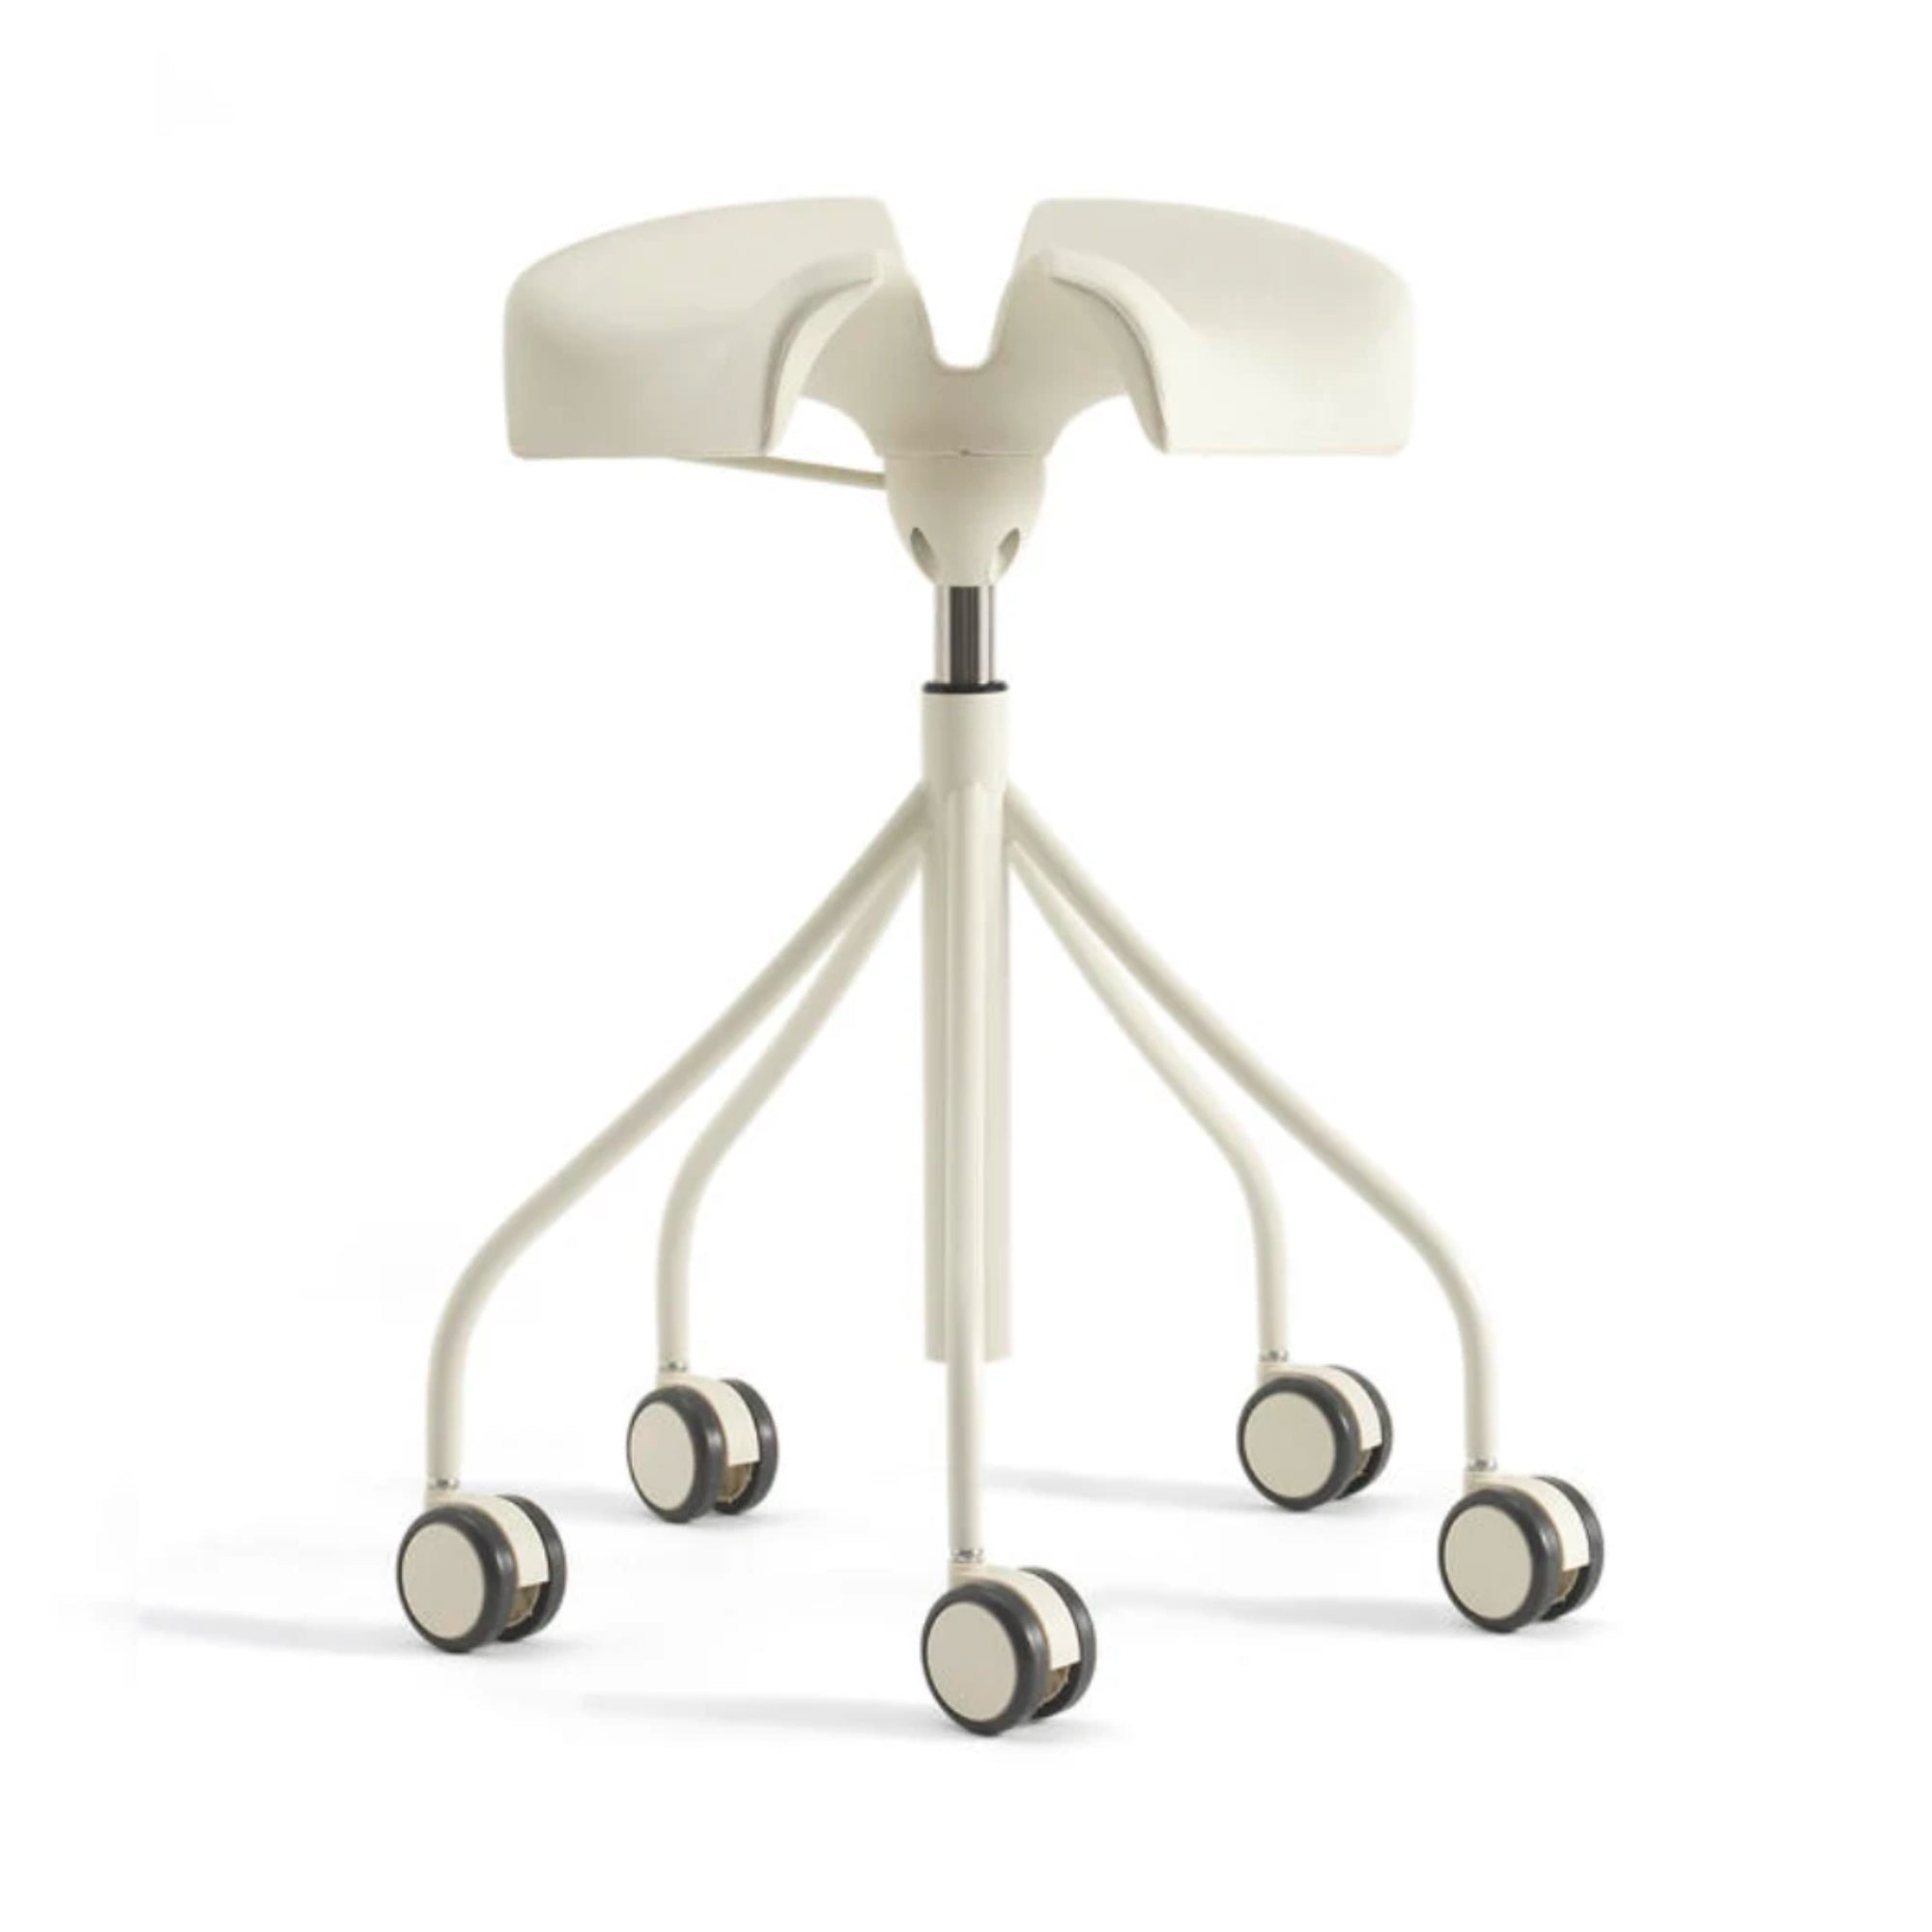 BD Barcelona Design Binaria Stool , White